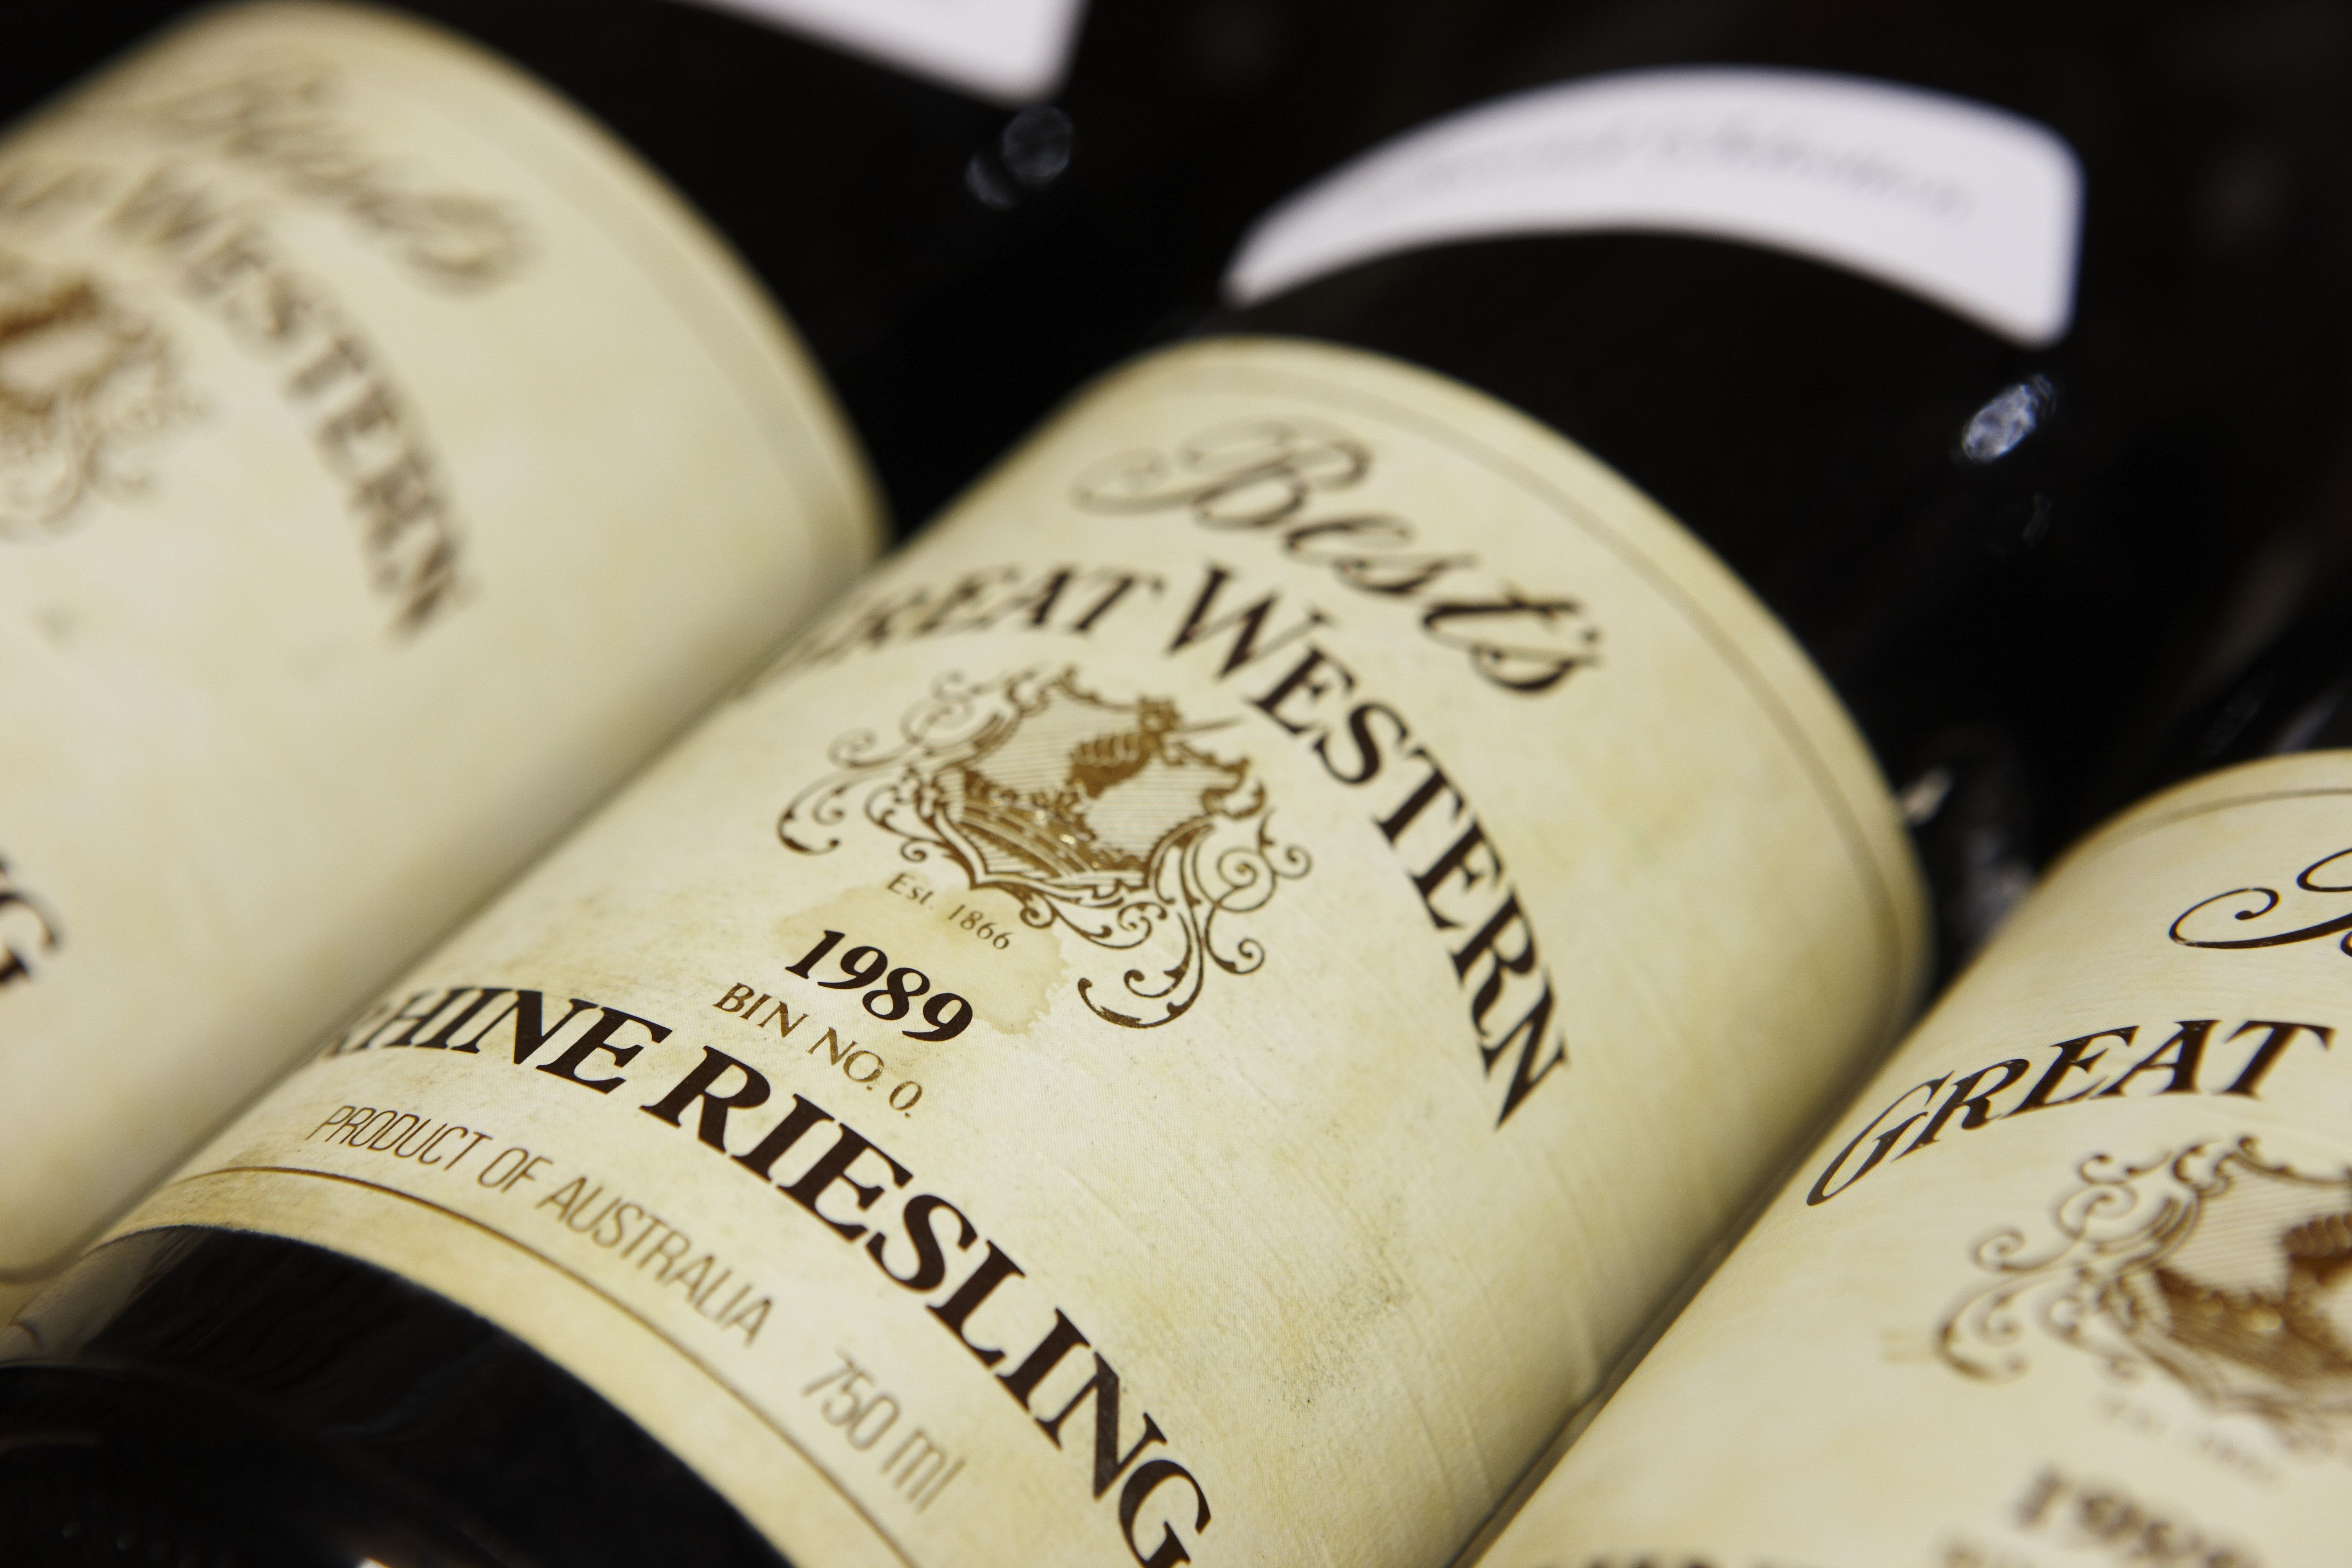 Our 1989 Rhine Riesling - as a Best's Imperial Wine Club member you often get access to these beautiful back vintage wines.